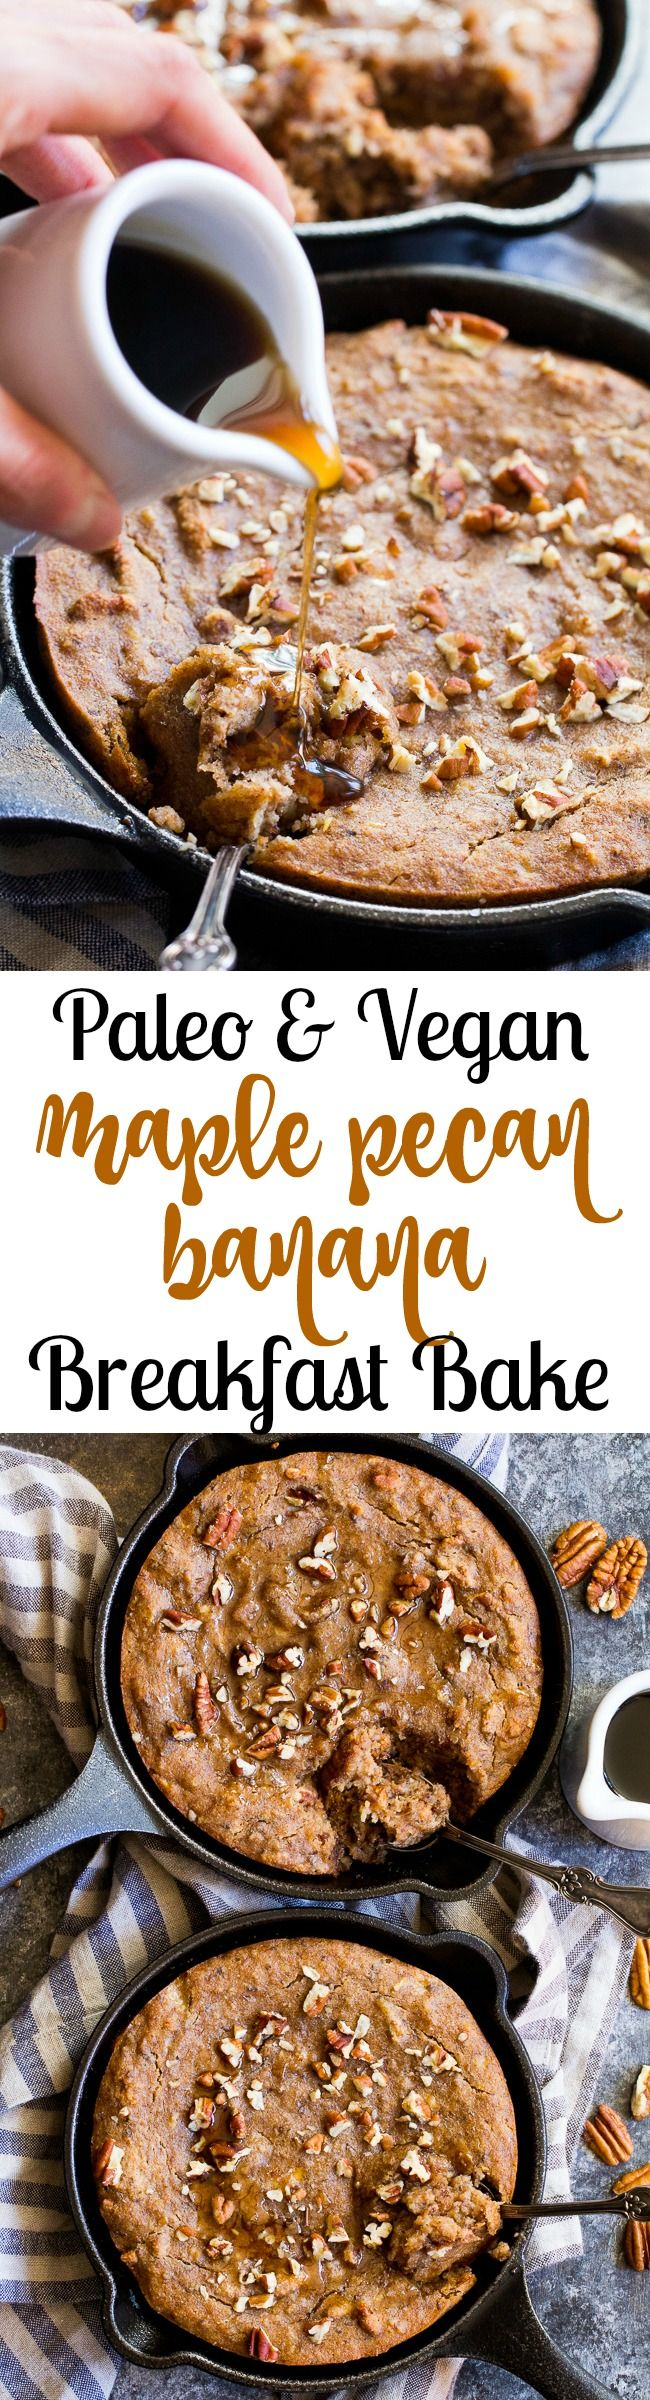 This healthy paleo and vegan banana breakfast bake is loaded with maple flavor, cinnamon and hearty pecans for a sweet satisfying breakfast treat. Gluten free, dairy free, egg free, refined sugar free, oil free and kid approved!